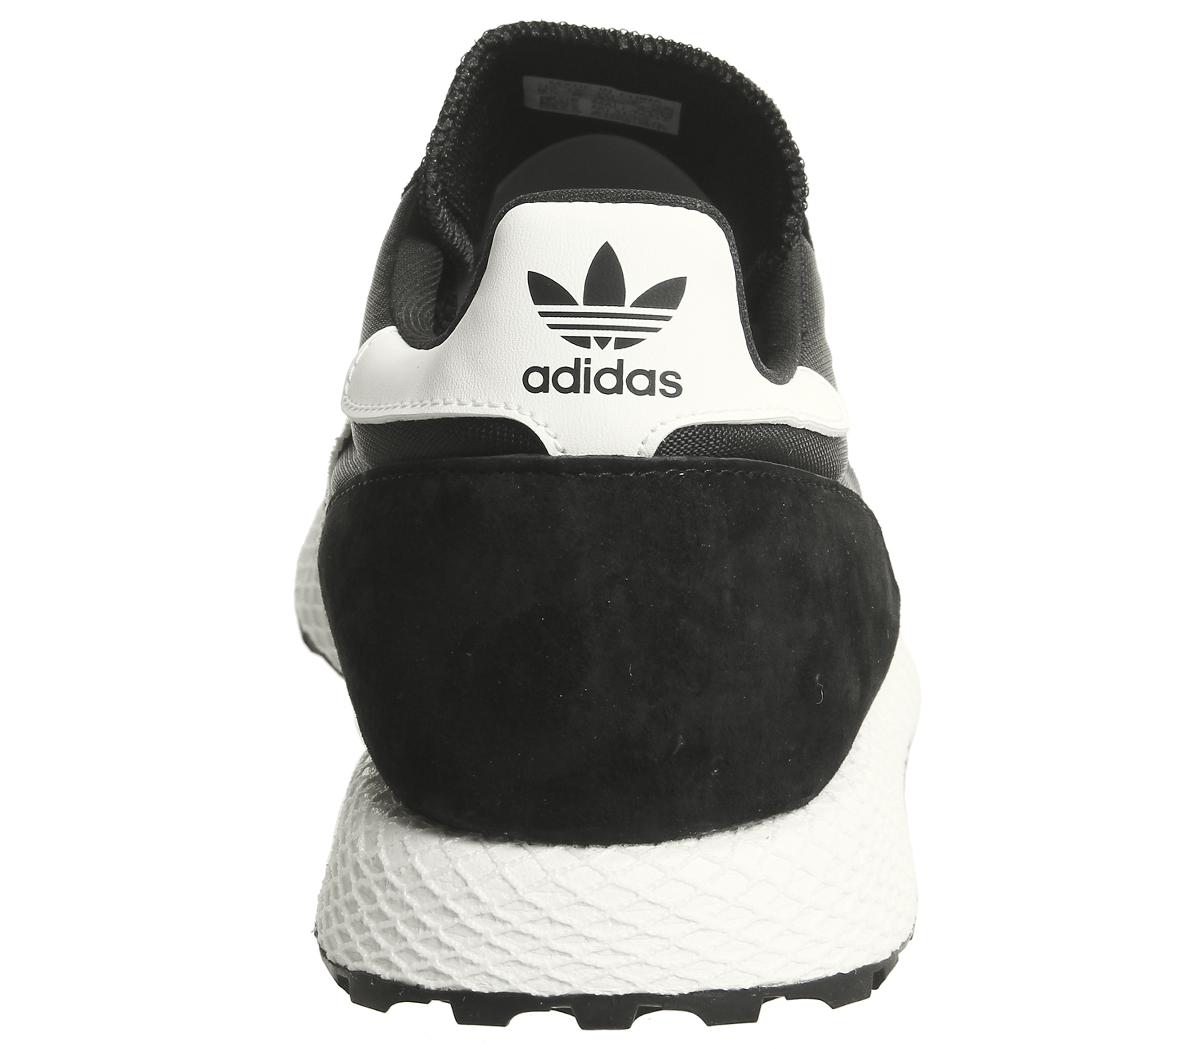 d3a4bc364ce Sentinel Womens Adidas Forest Grove Trainers CORE BLACK WHITE Trainers Shoes